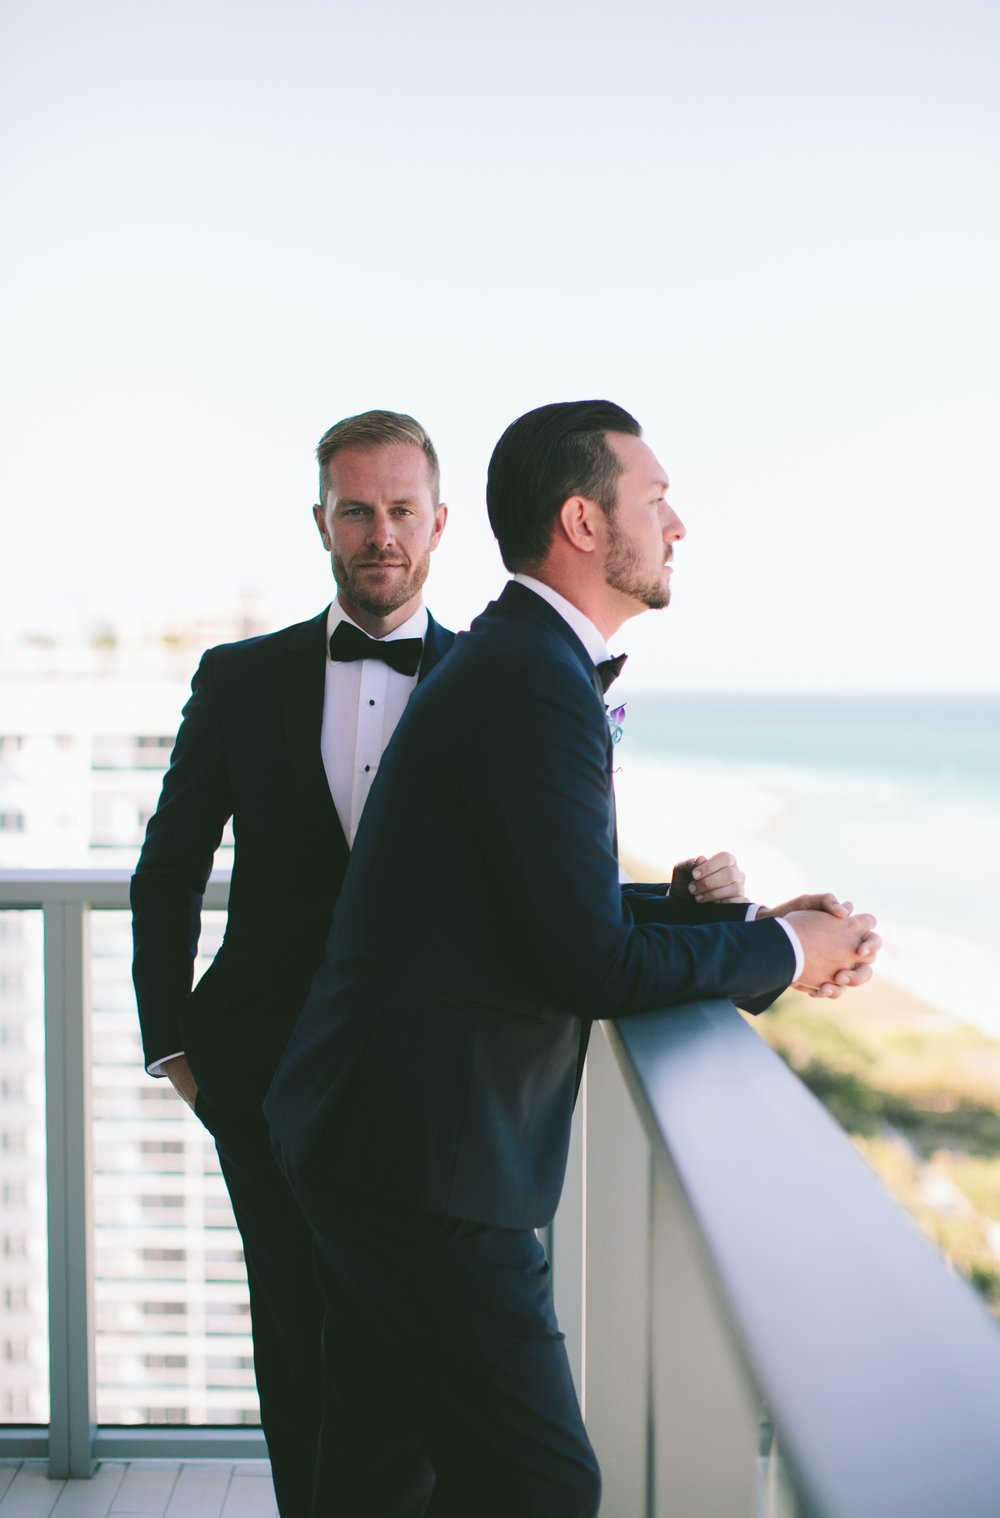 Josh + Craig Wedding at the W South Beach in Maimi19.jpg